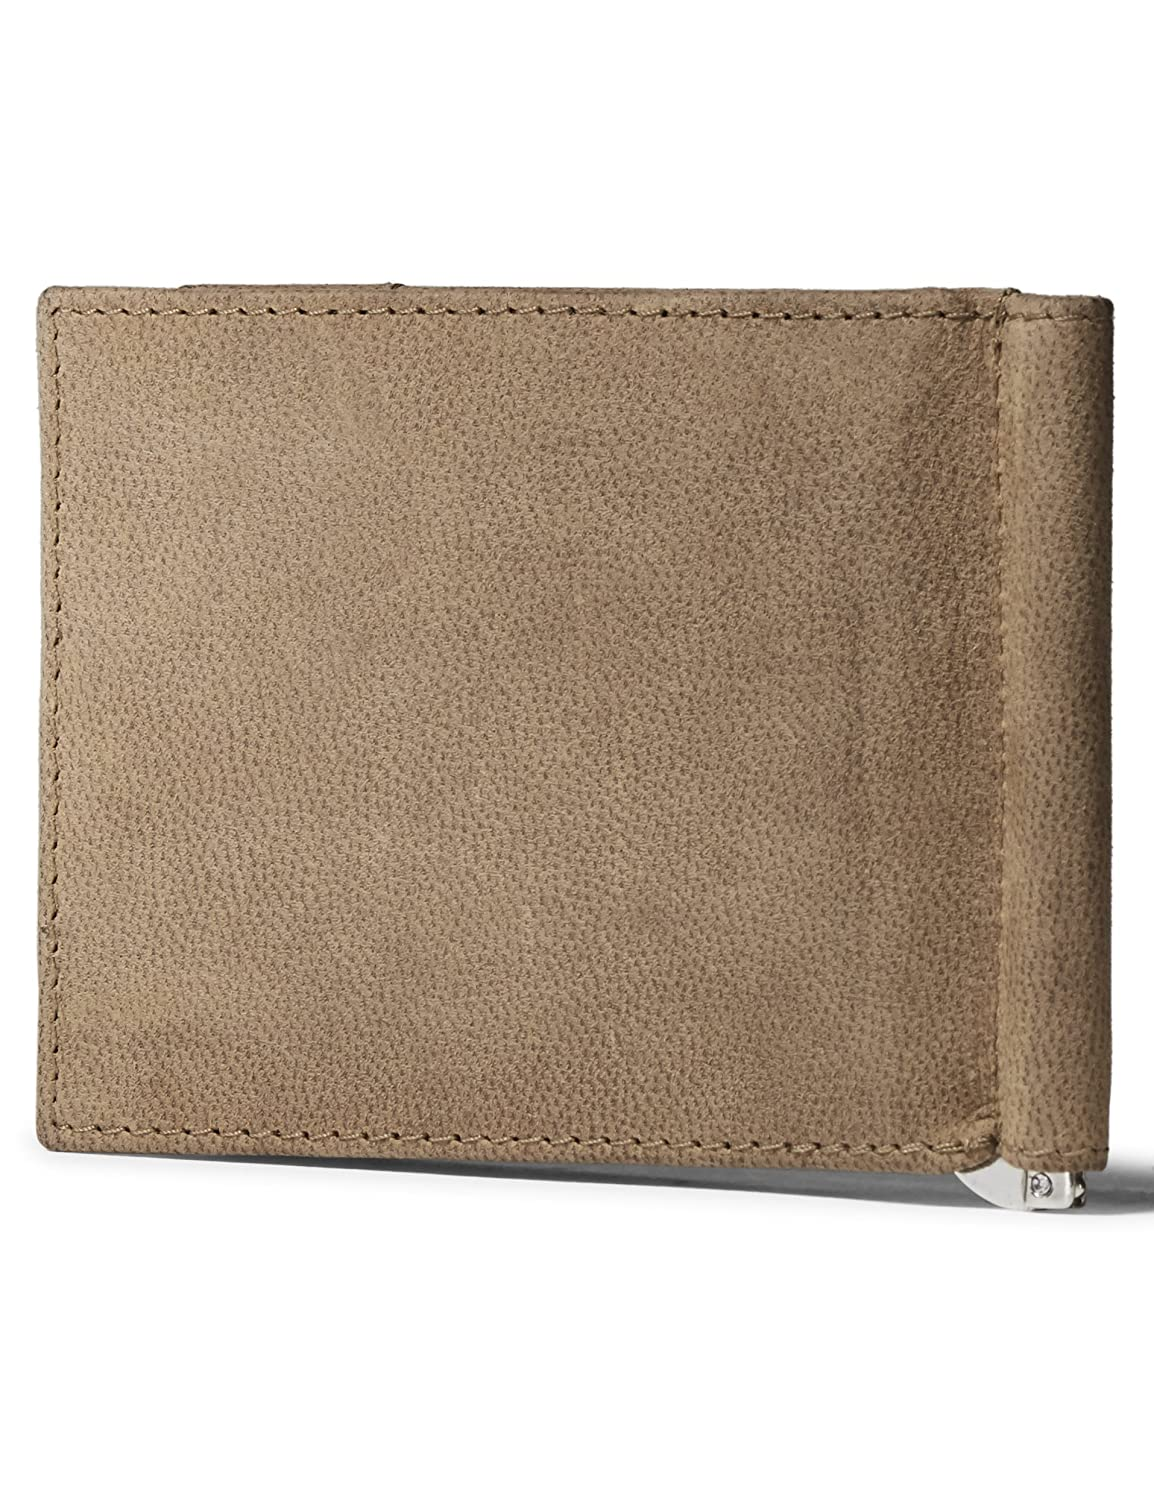 18a5924ae8ee Leather Architect Men's 100% Leather Bifold RFID Blocking Wallet with Money  Clip